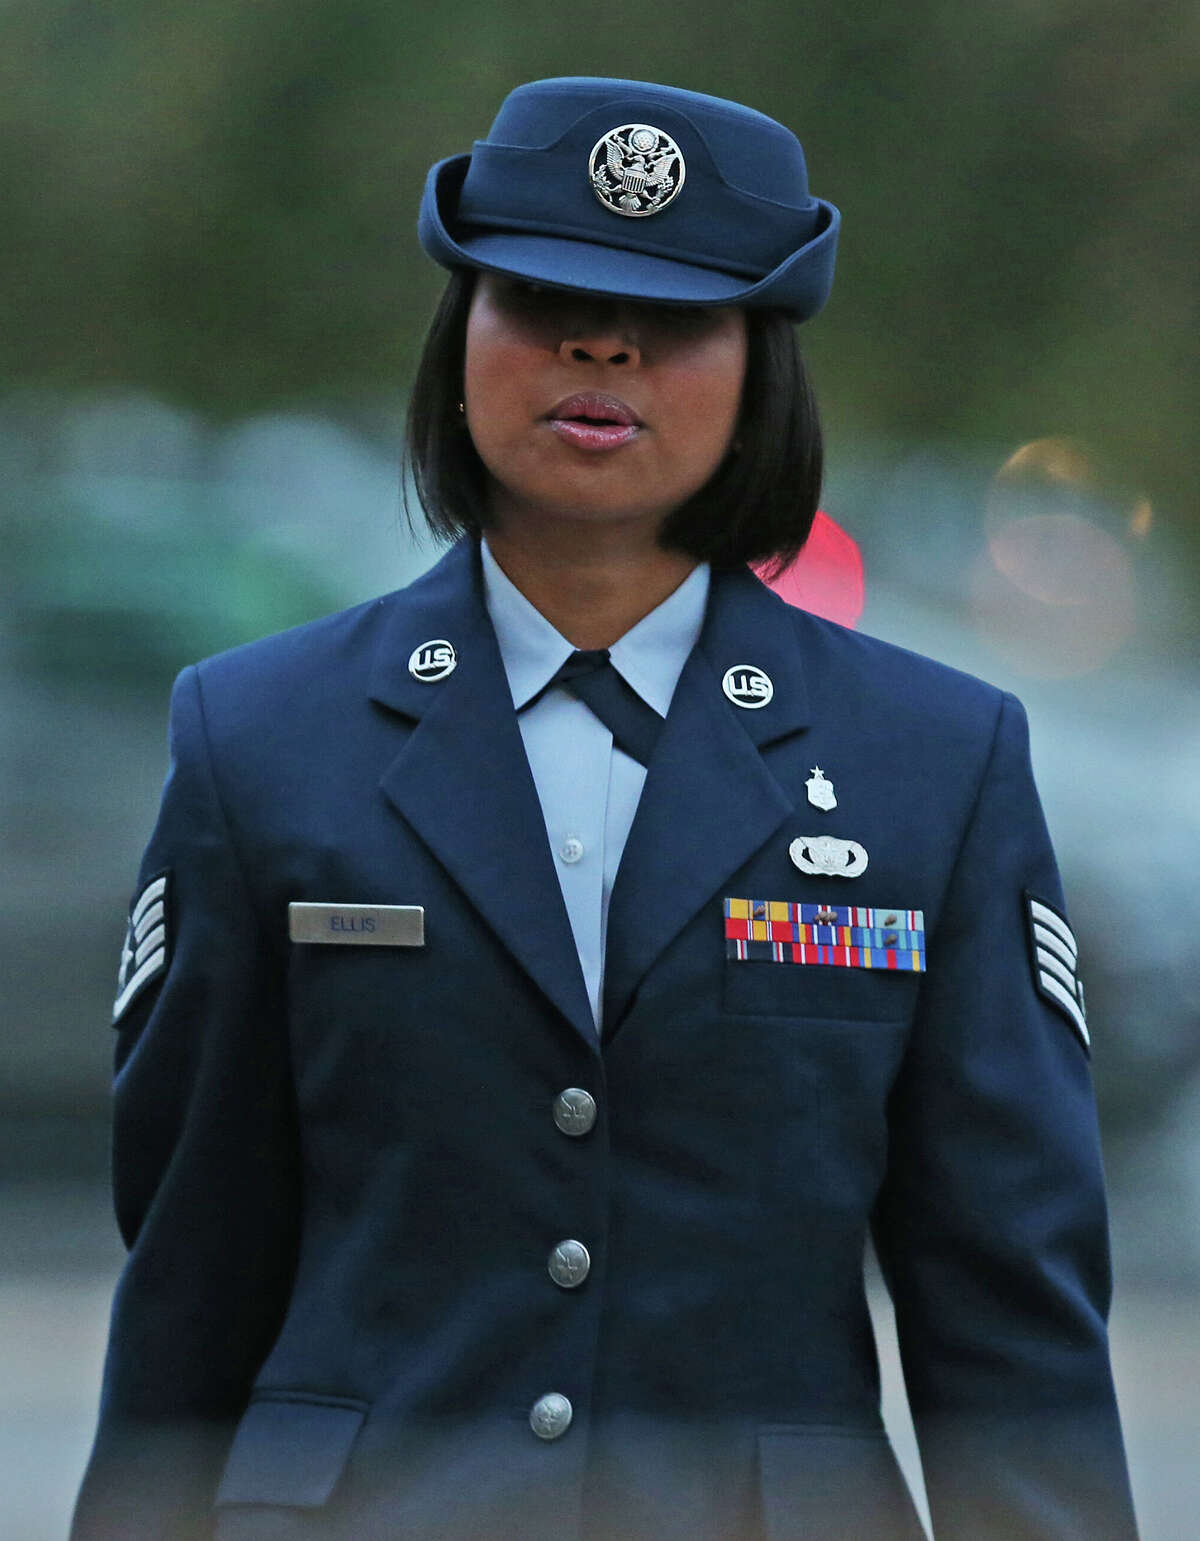 U.S. Air Force Staff Sgt. Annamarie Ellis arrives at Lackland Air Force Base for her trial on malt raining and maltreating basic trainees charges, Monday, March 24, 2014.